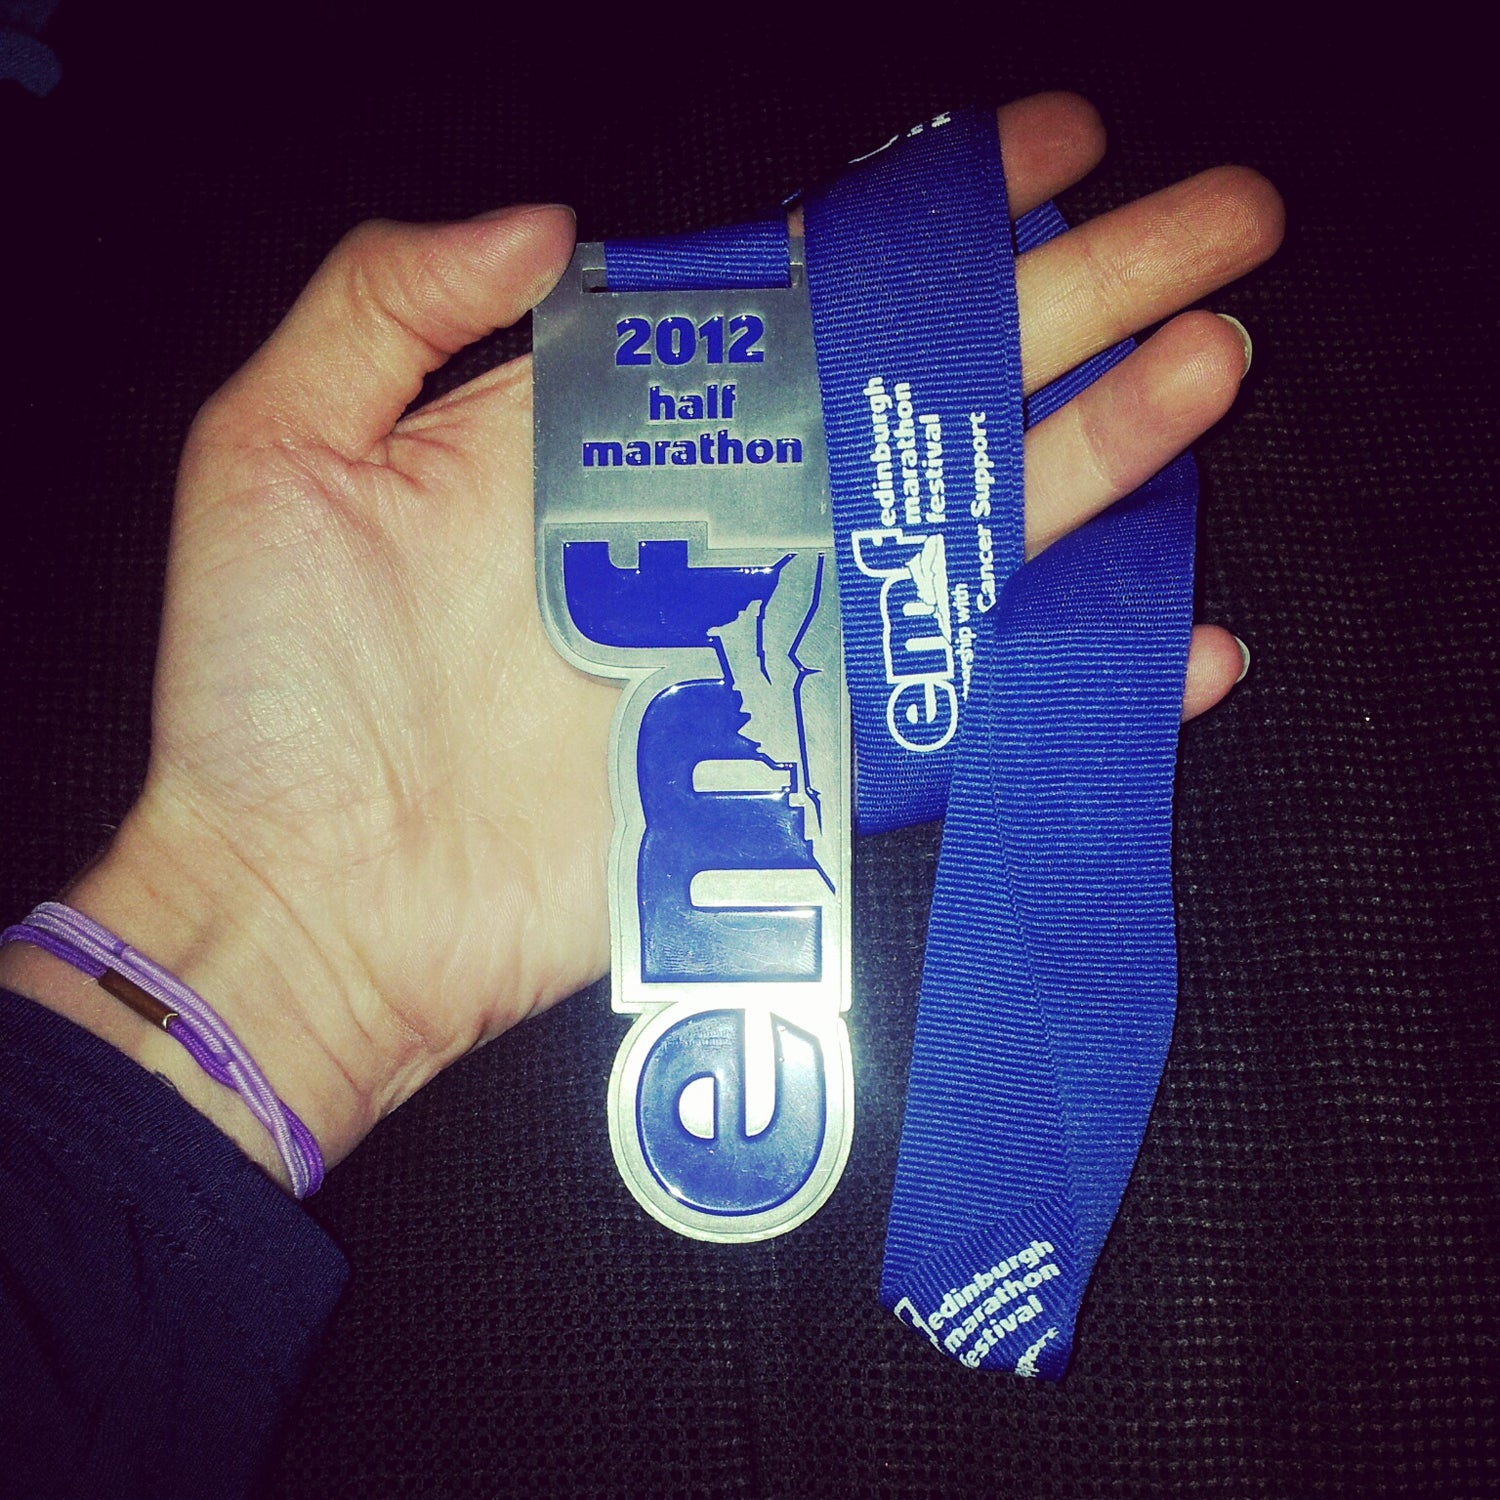 """Williams: The reason behind this is juvenile, admittedly. Clearly the overall shape of the medal was overlooked during the planning stage, because although the front of the medal looks respectable enough (the letters """"emf,"""" for Edinburgh Marathon Festival), once you flip the medal over, it resembles male genitalia."""